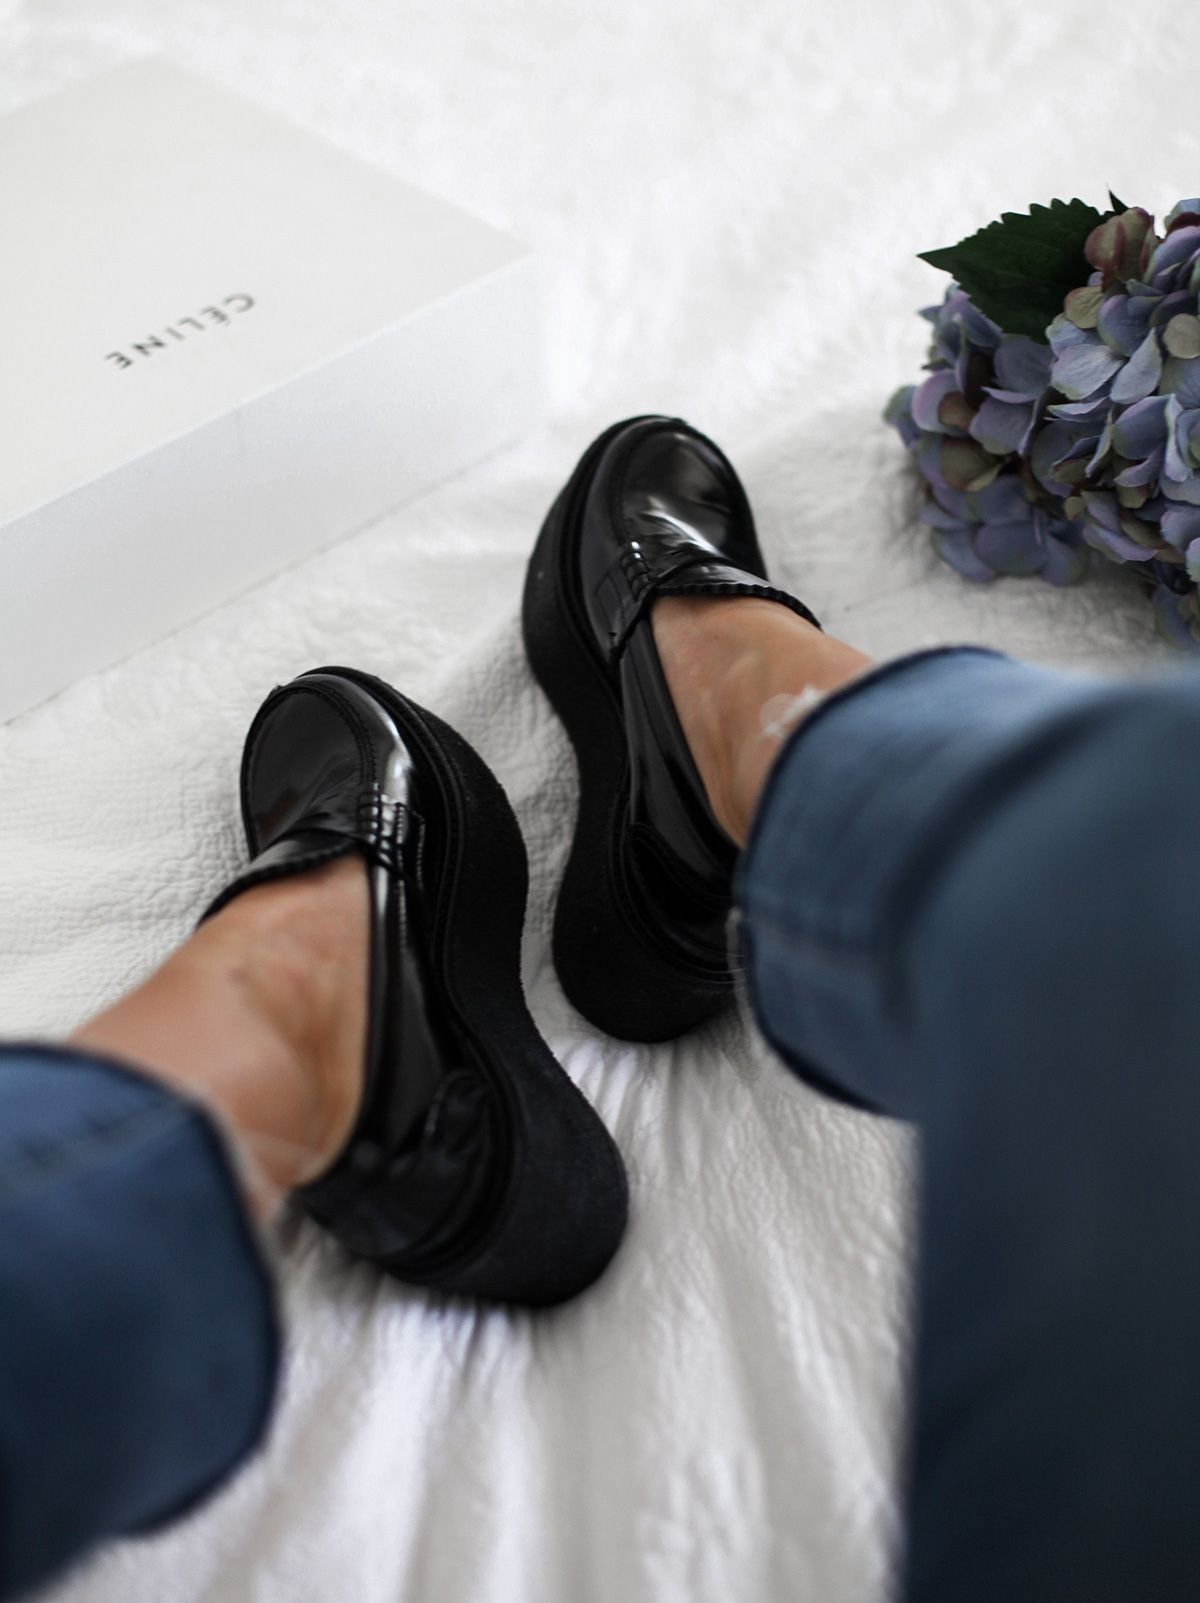 31b4971b7ca Blogger See Want Shop wearing Celine platform loafers and cropped fray  denim jeans from Paige